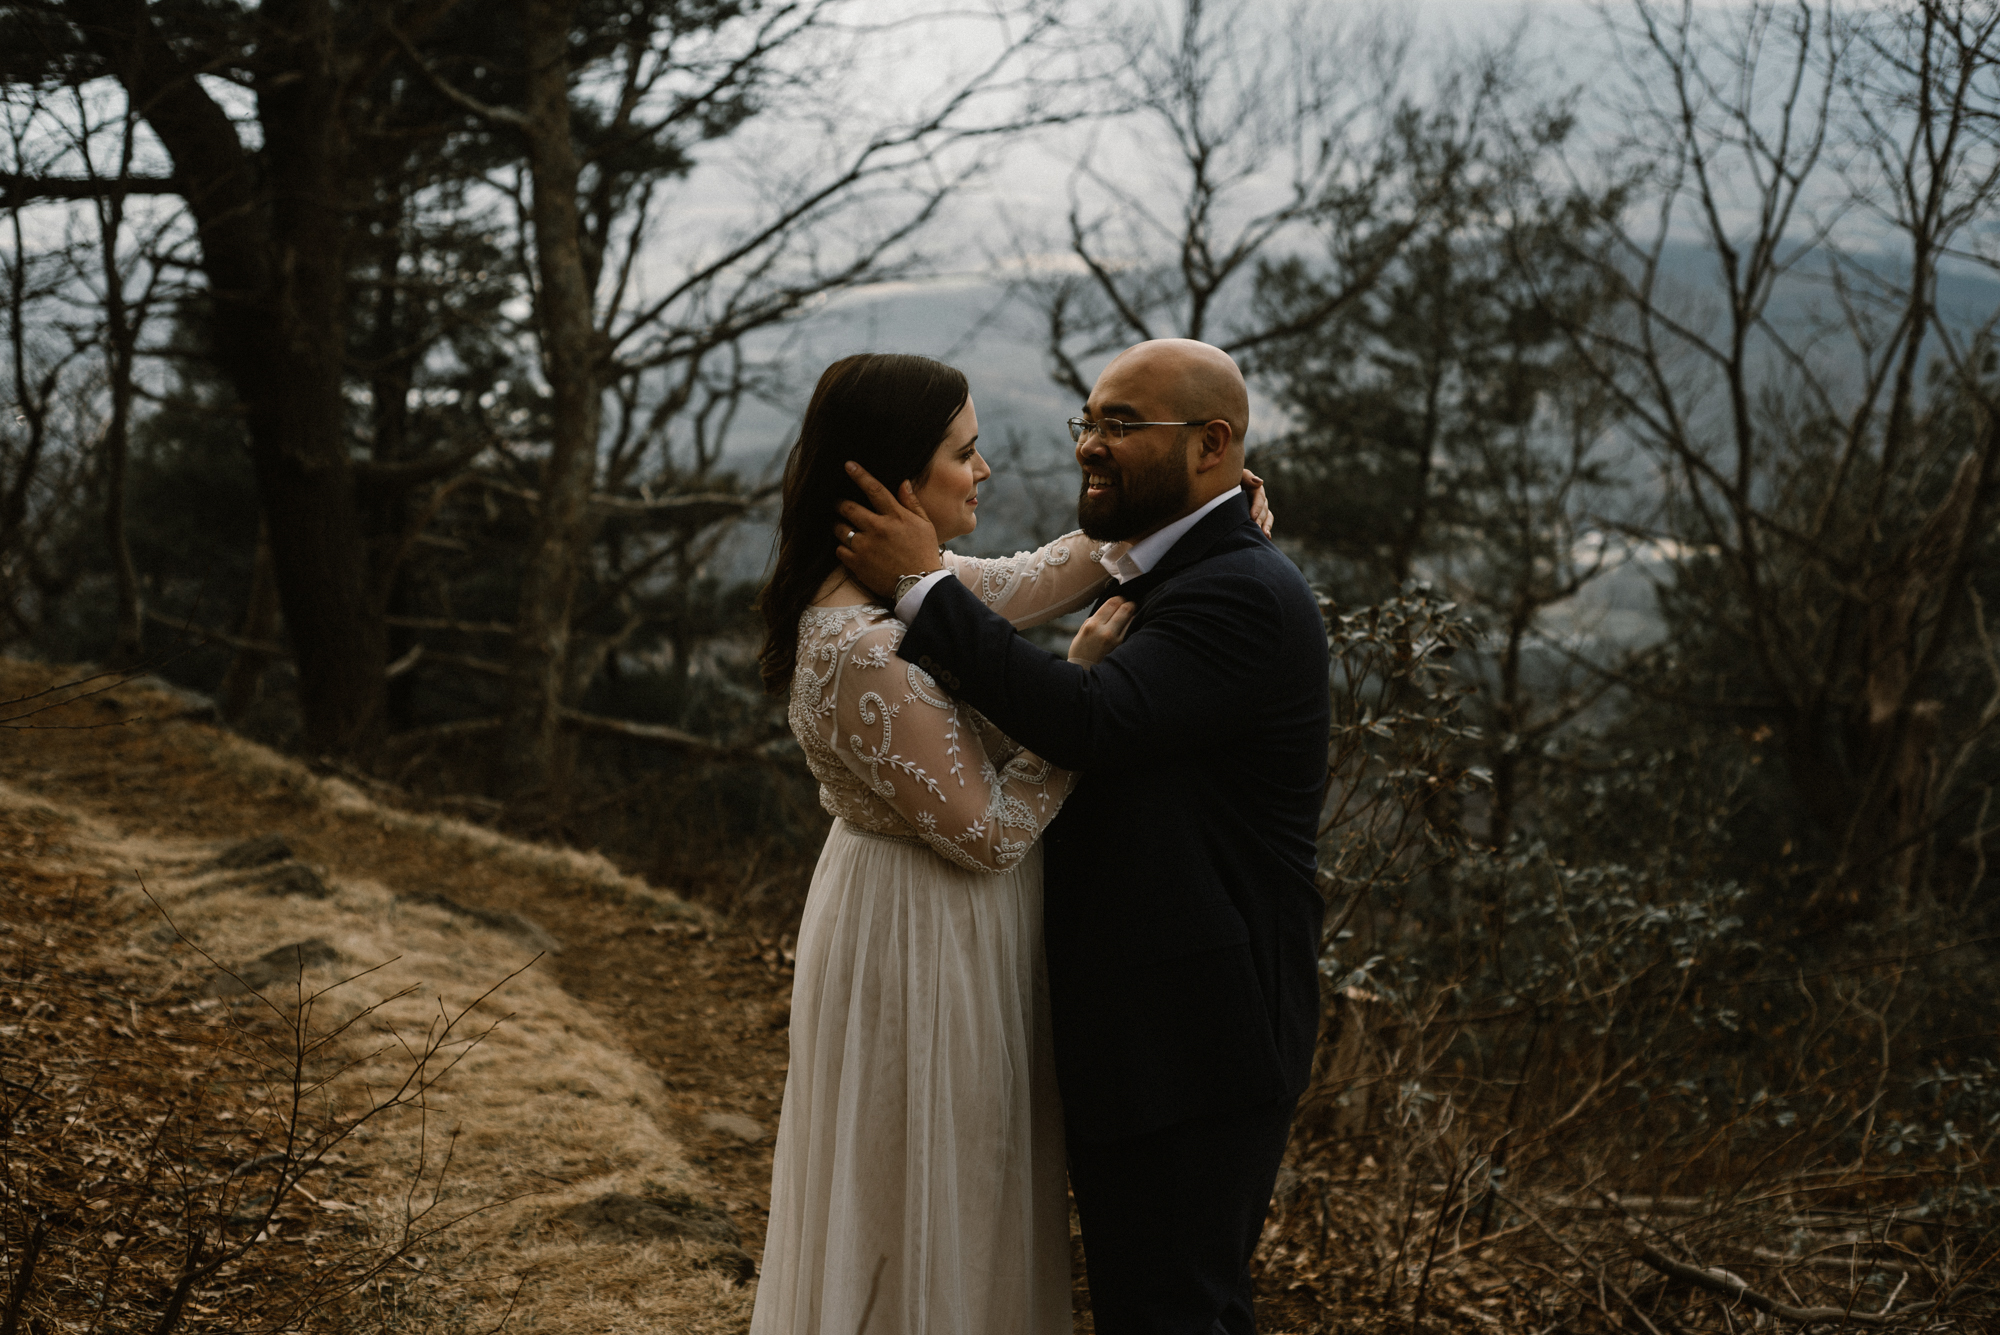 Emma and Jeddah - Intimate Luray Wedding - Shenandoah National Park Wedding - Adventure Elopement in Virginia - Shenandoah National Park Elopement_67.jpg